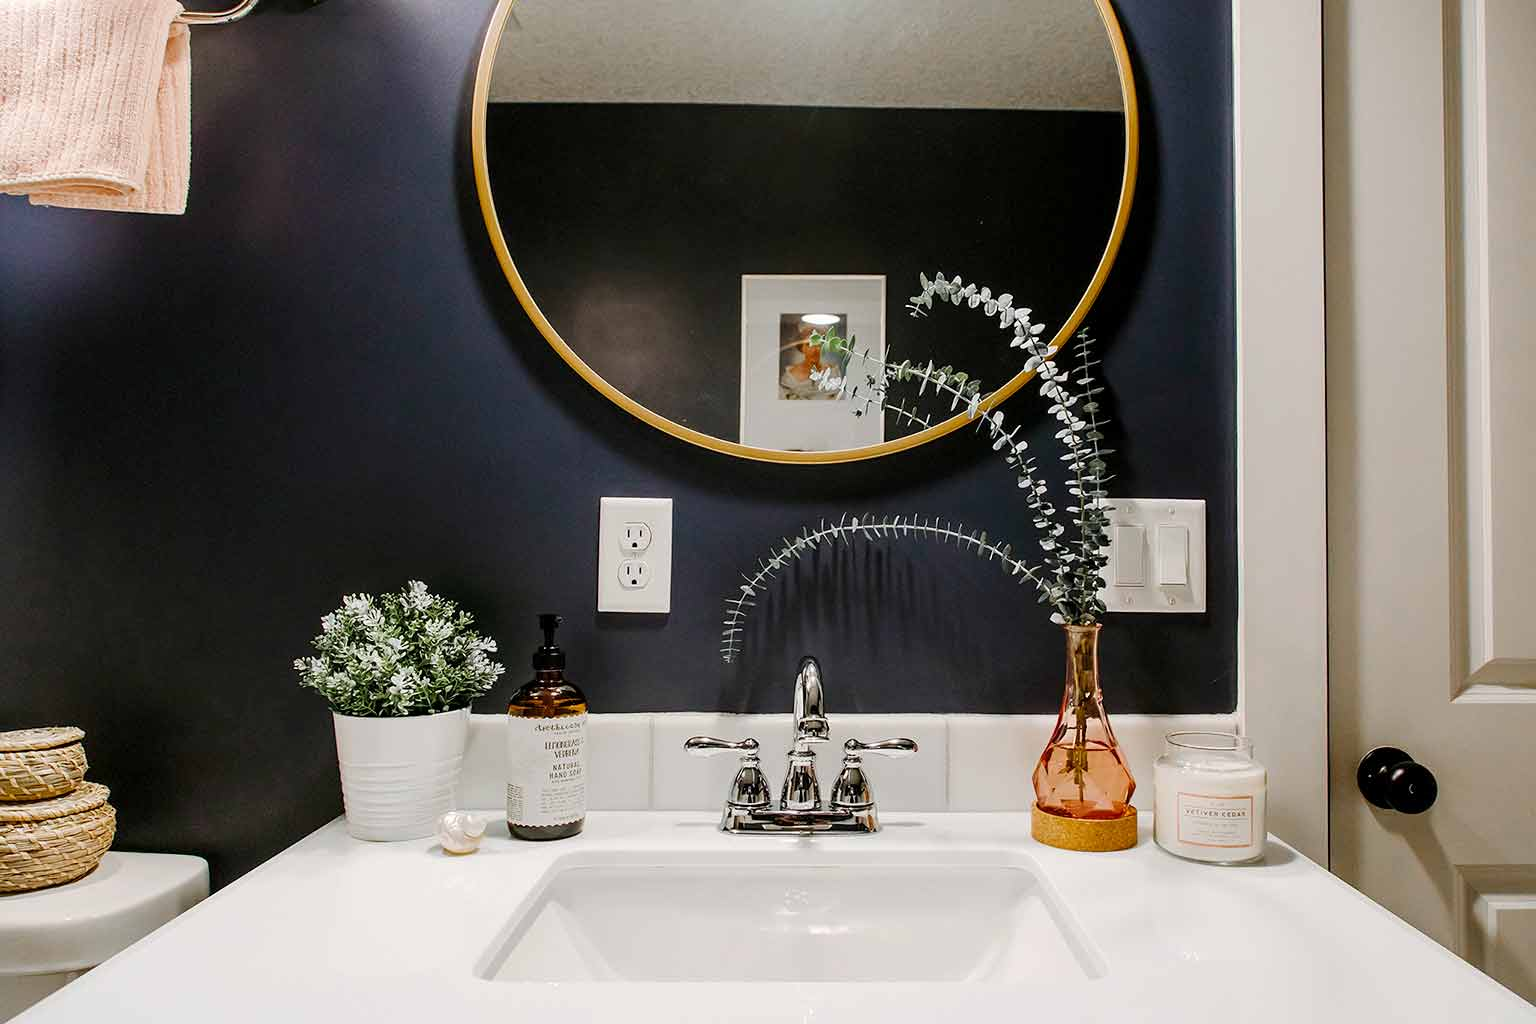 Hale navy bathroom with brass accents and board and batten - The Guest House Reveal - That Homebird Life Blog